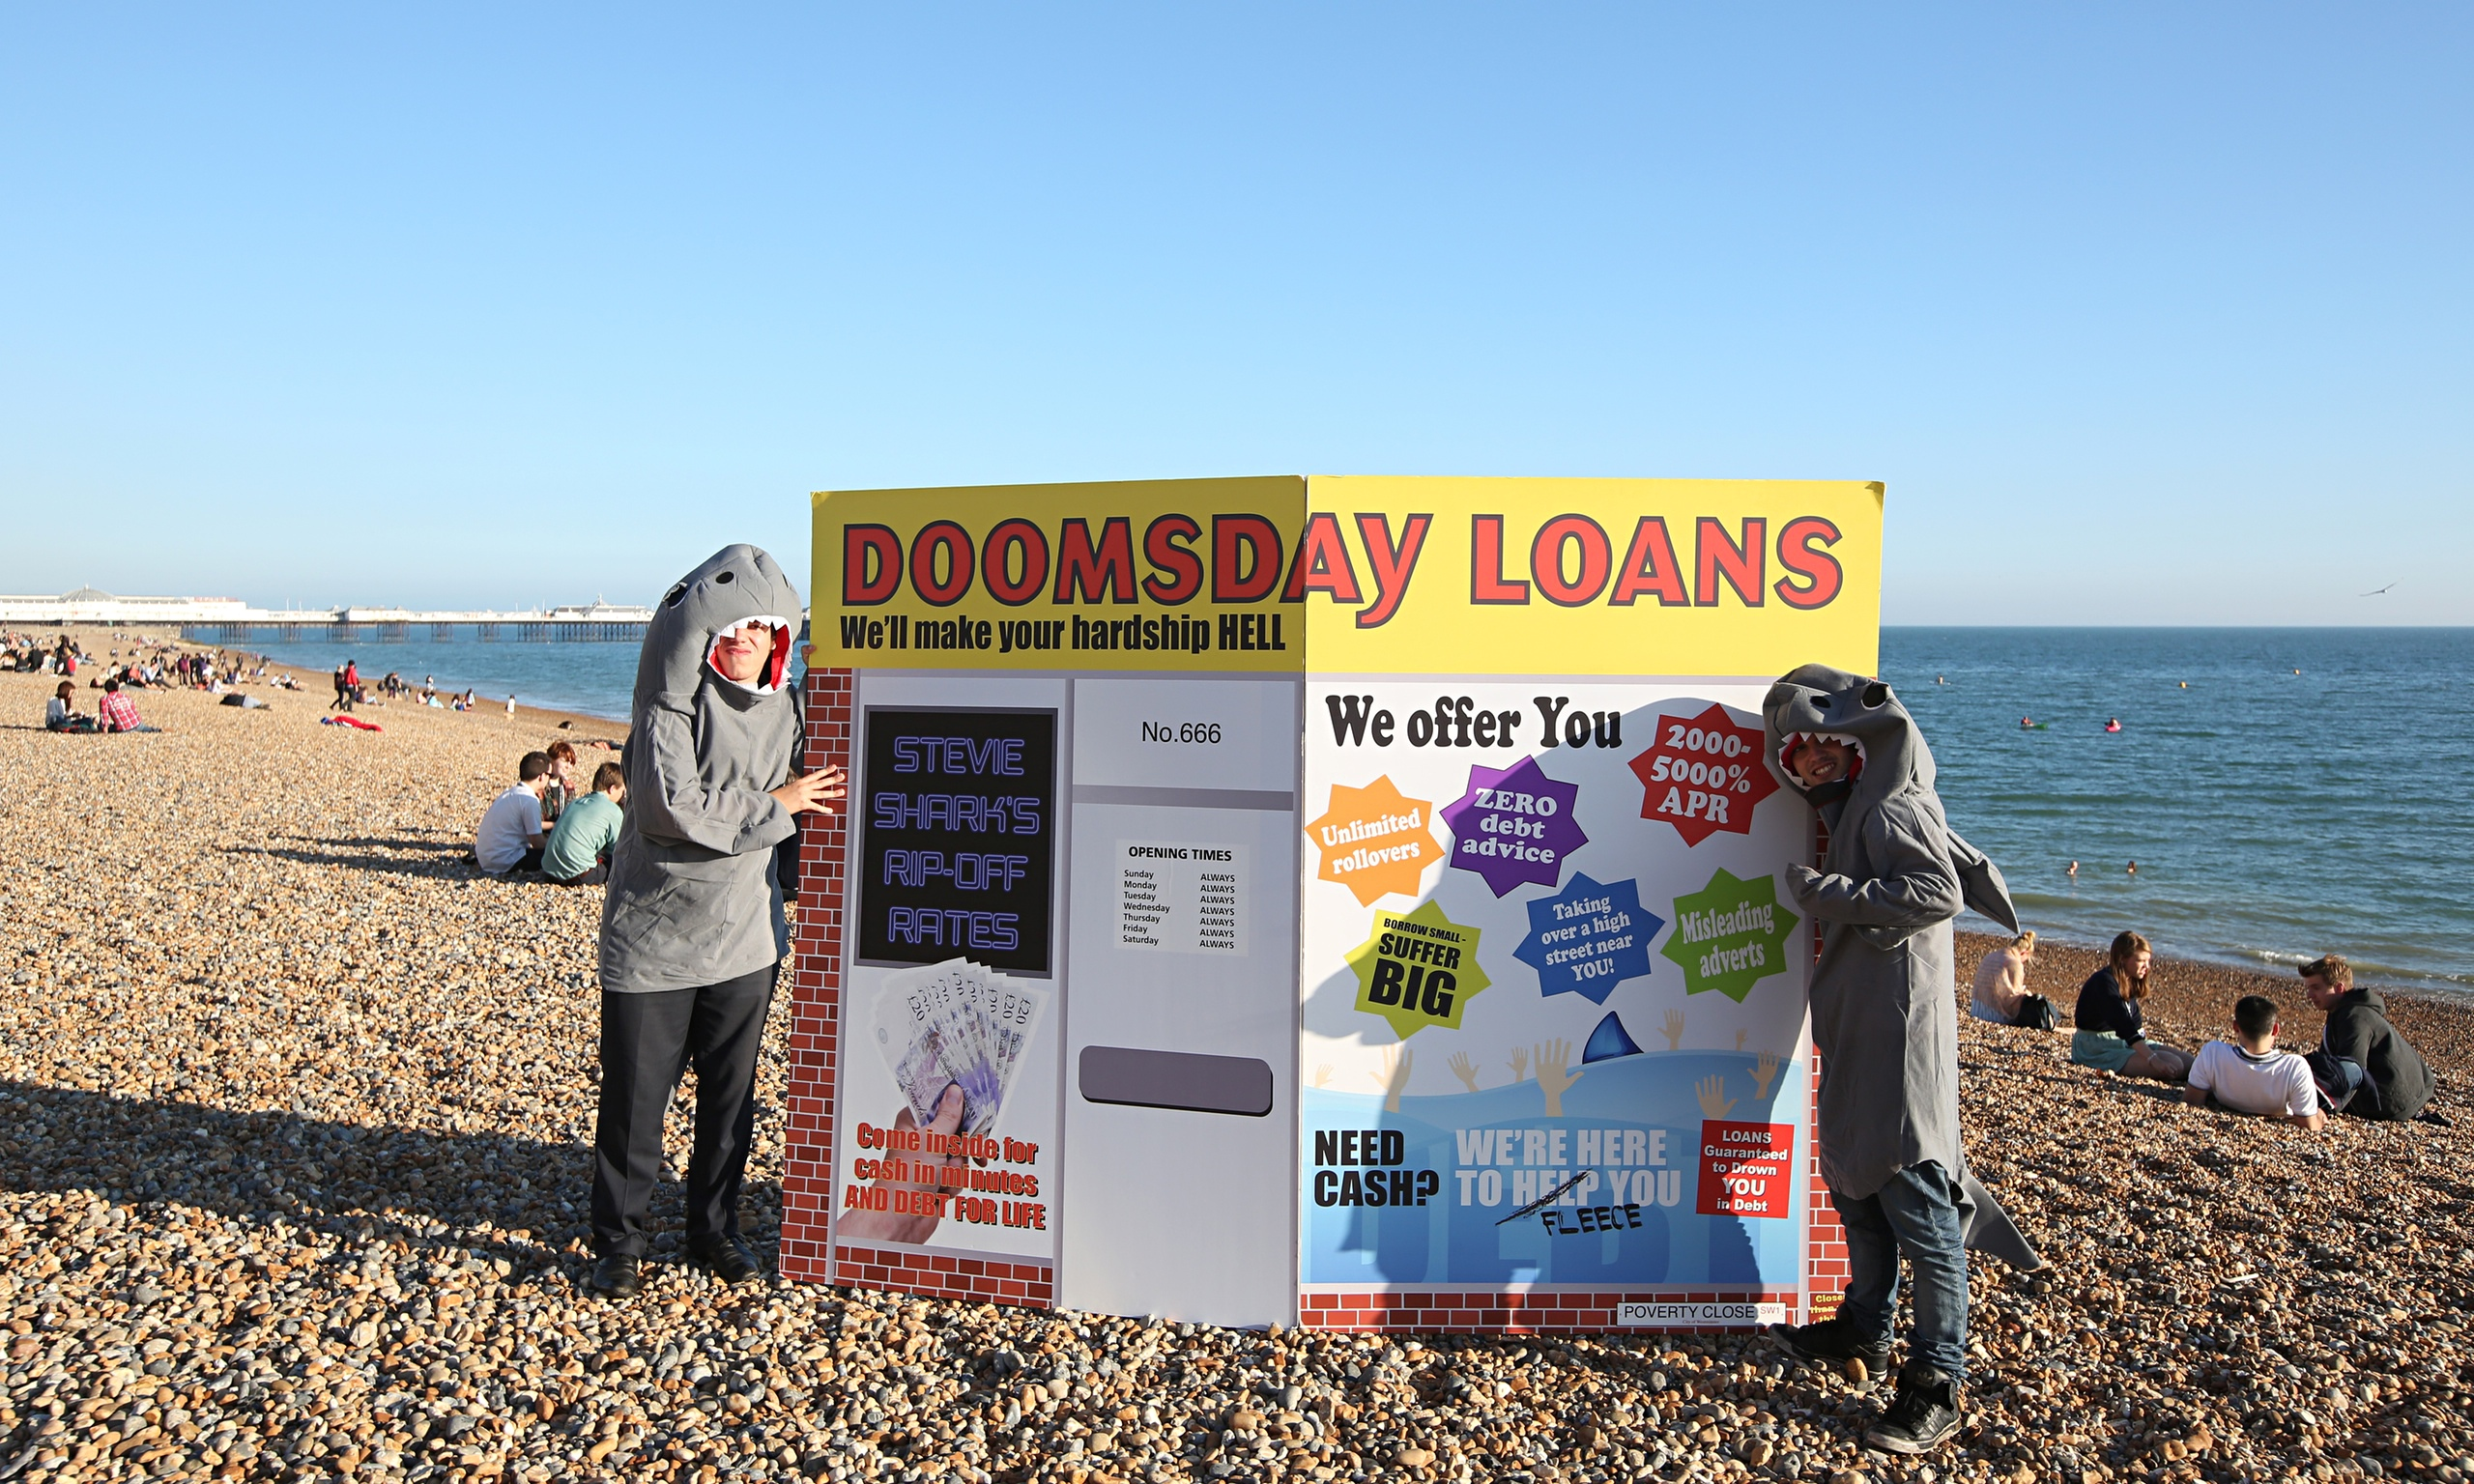 FCA imposes cap on payday loans